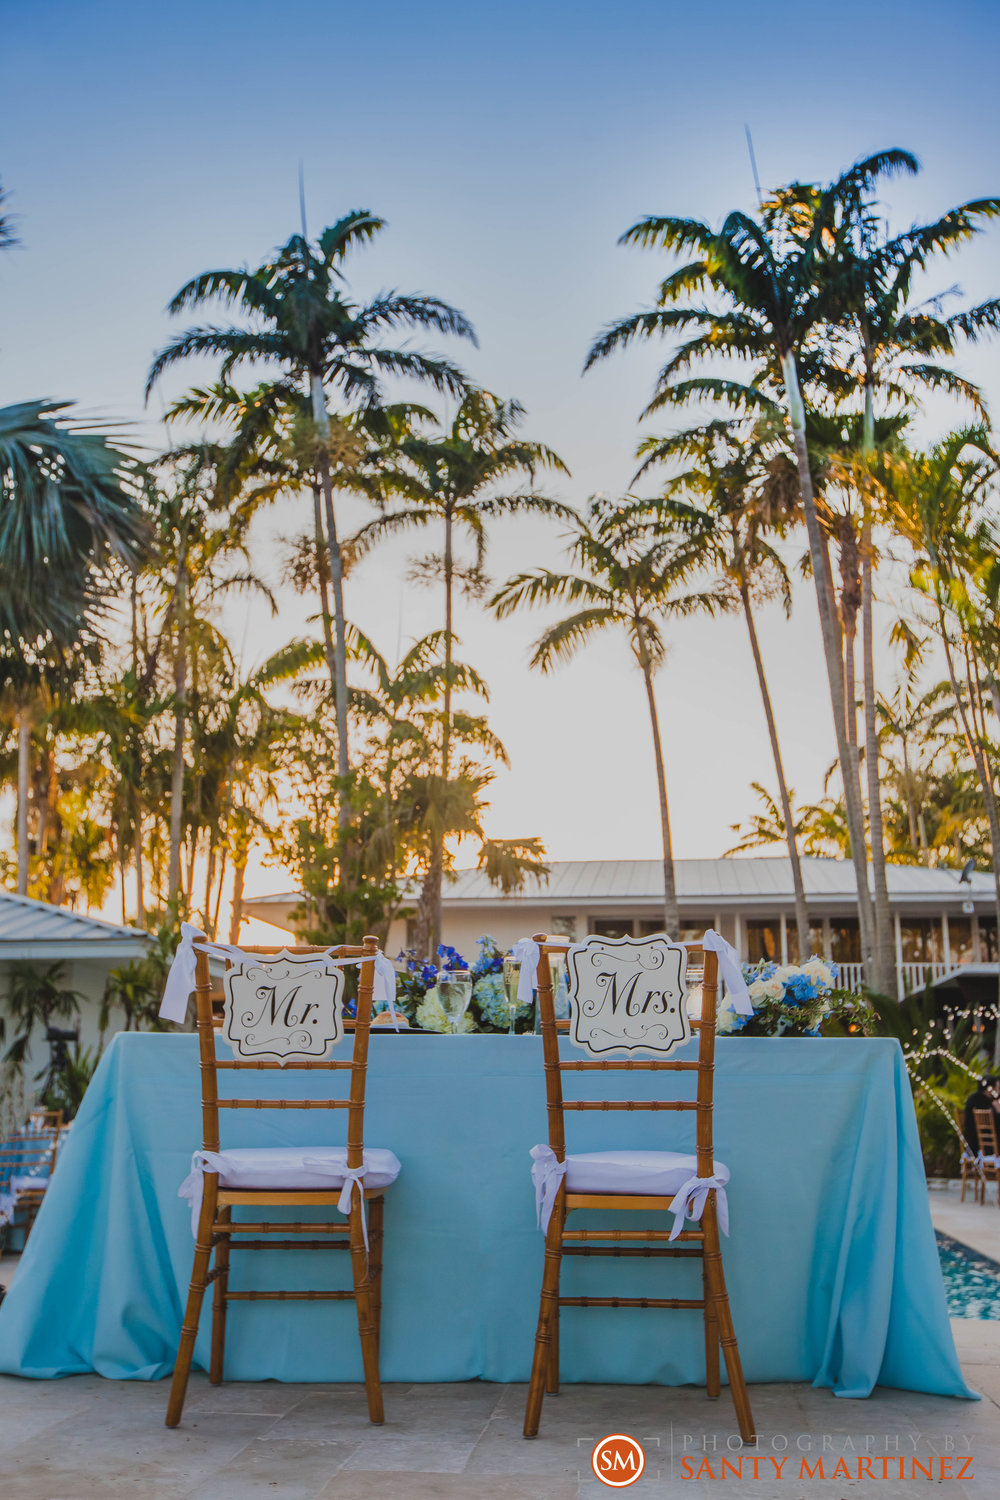 Wedding - Whimsical key West House - Photography by Santy Martinez-37.jpg